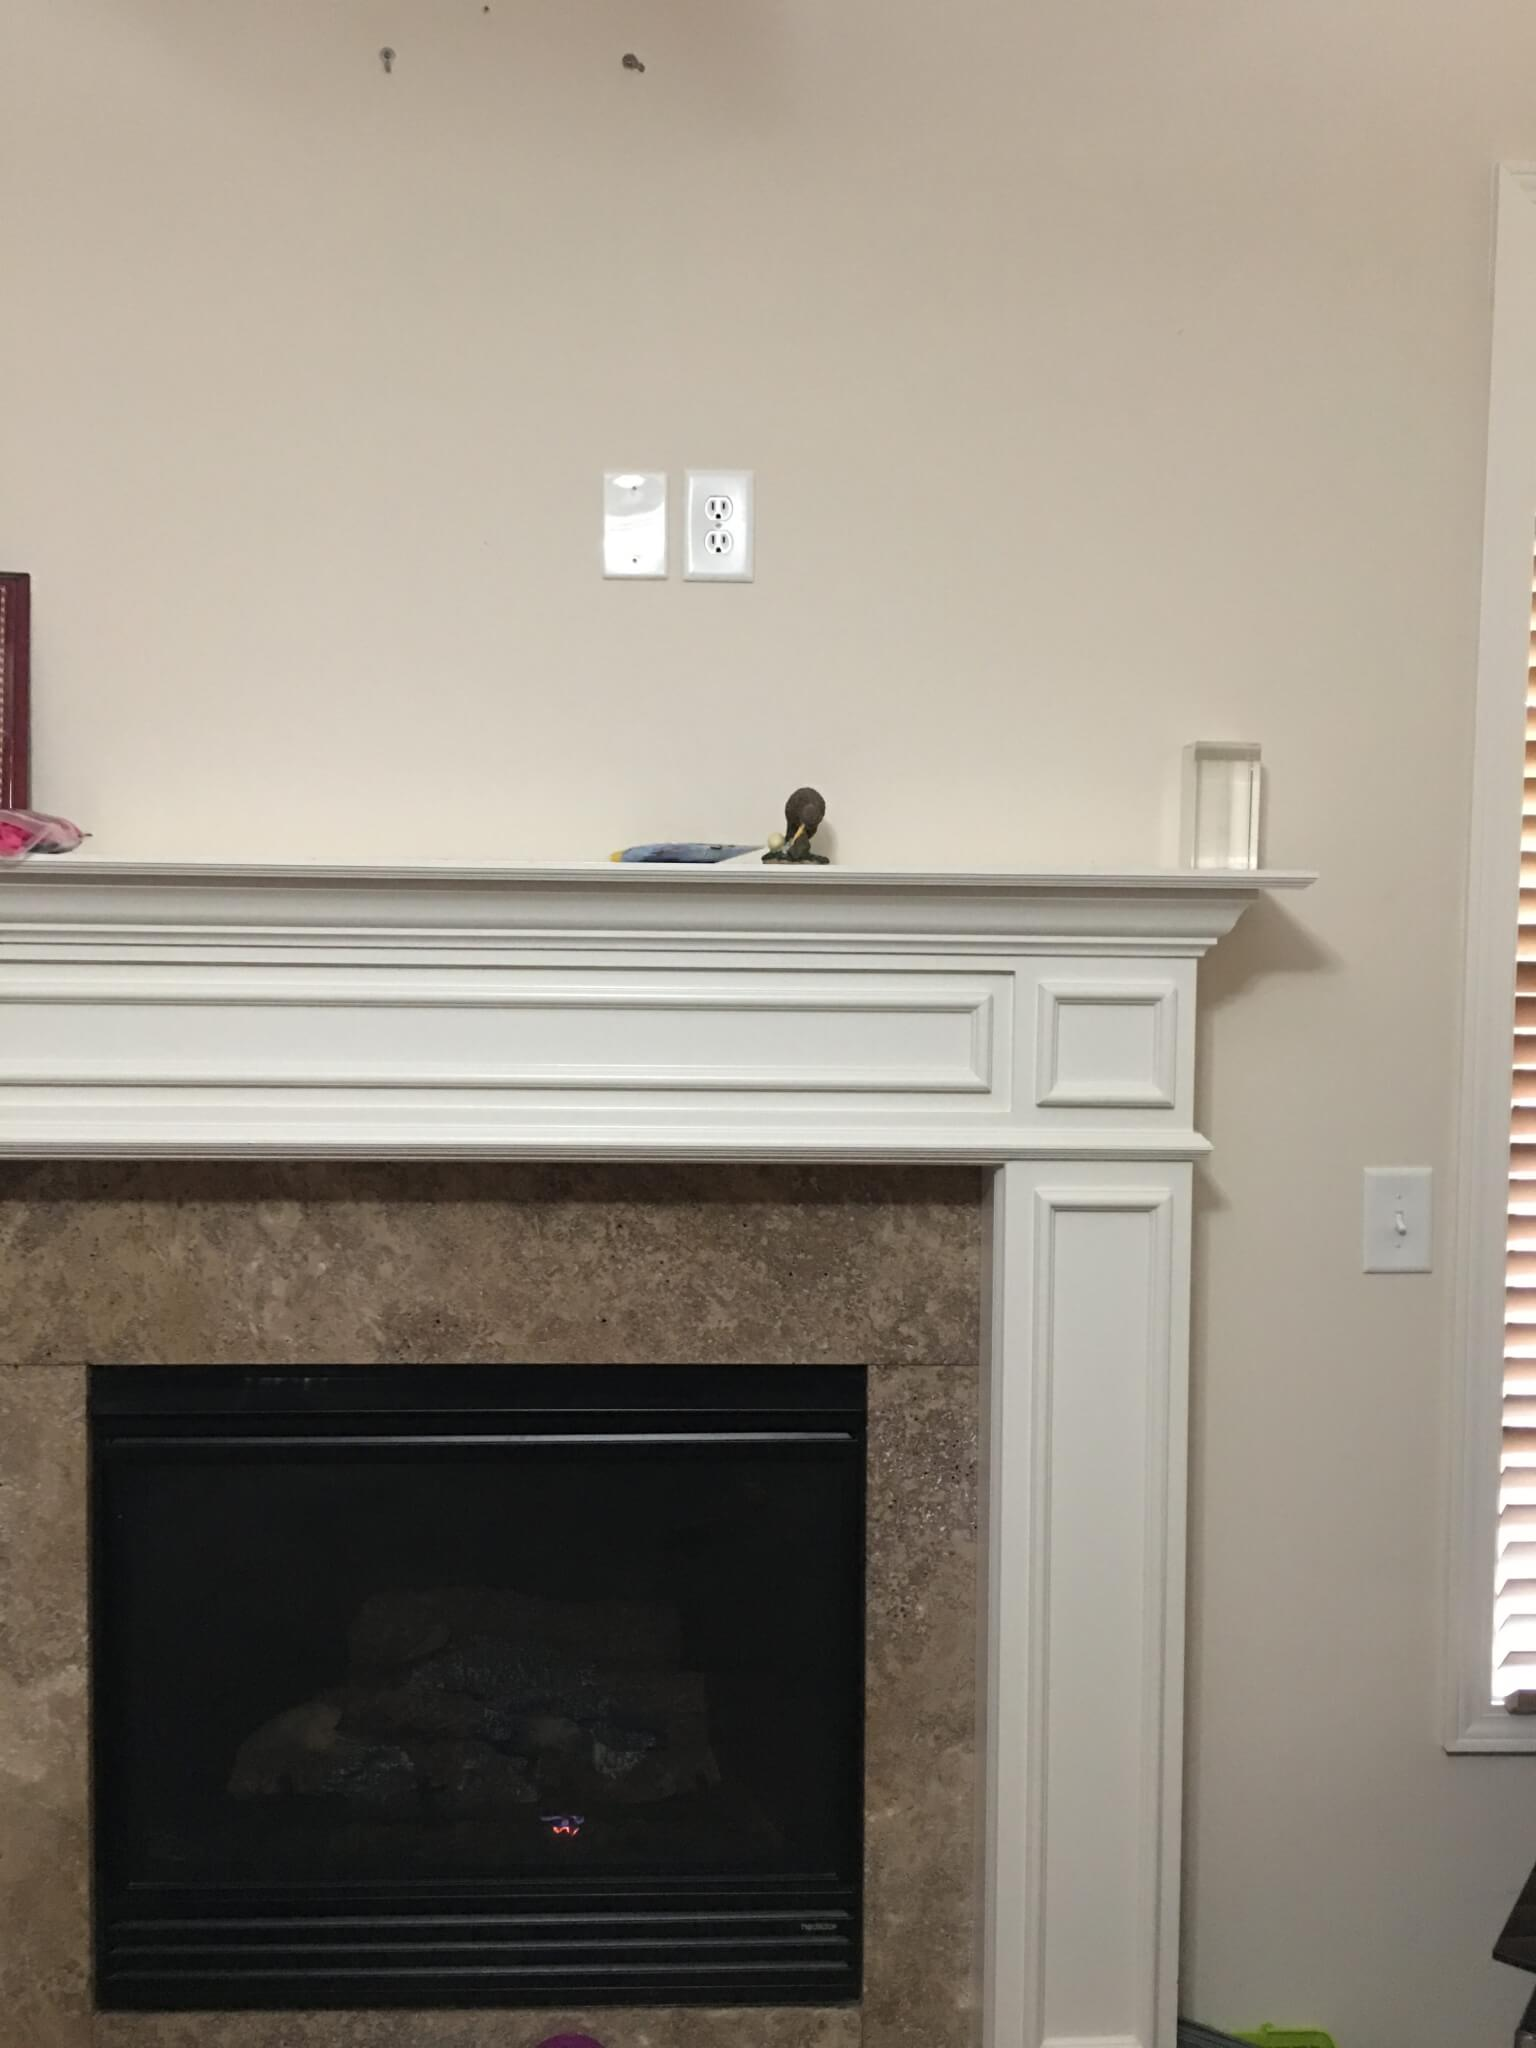 hight resolution of also this assumes you control the fireplace using a wall switch when you flip the switch the fireplace comes on if you have that type of fireplace